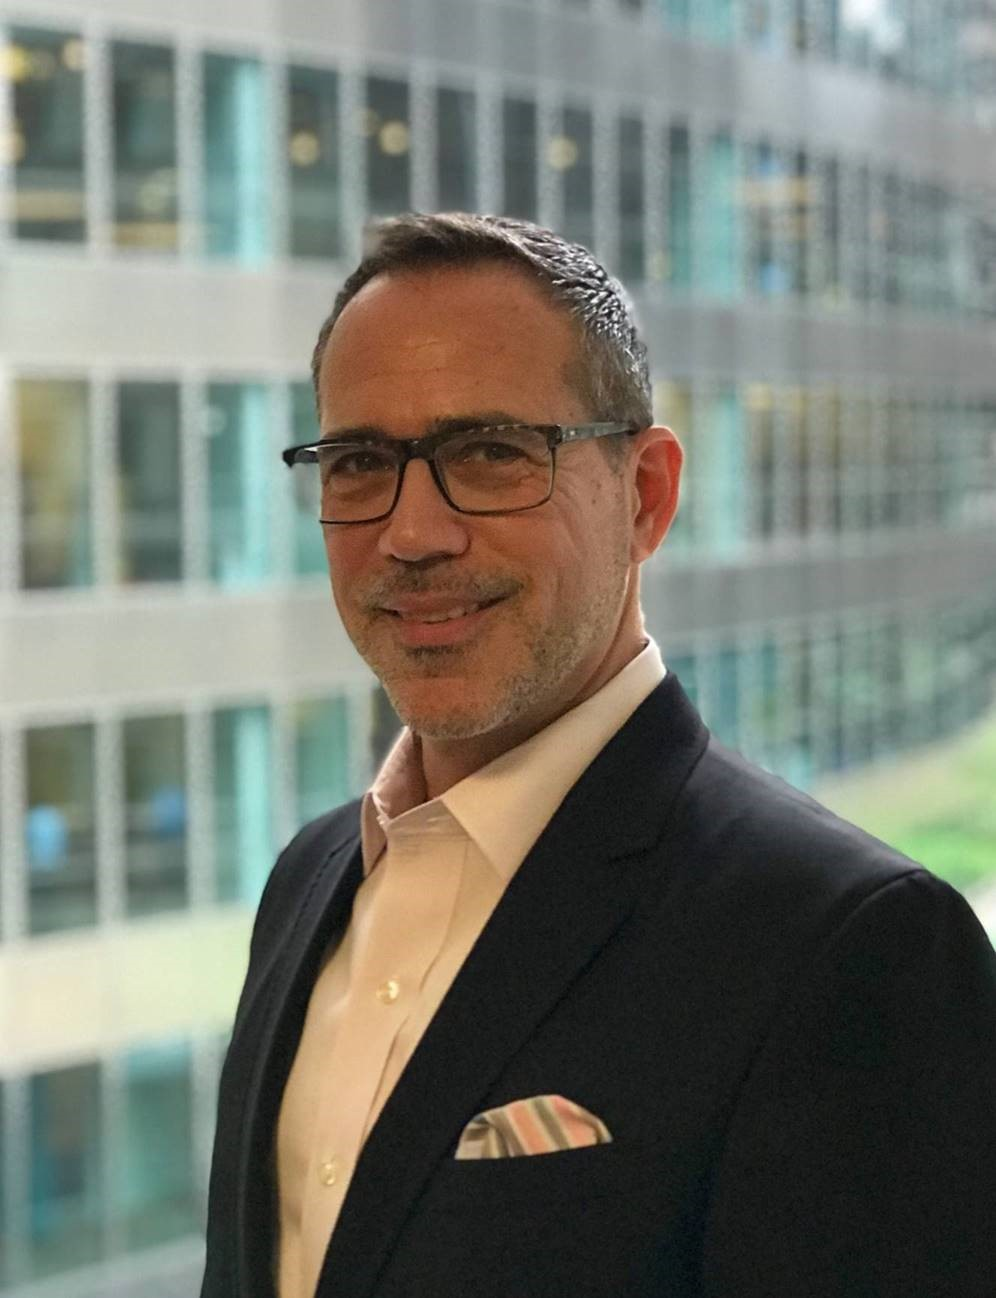 CX NYC 2019 Speakers · Forrester